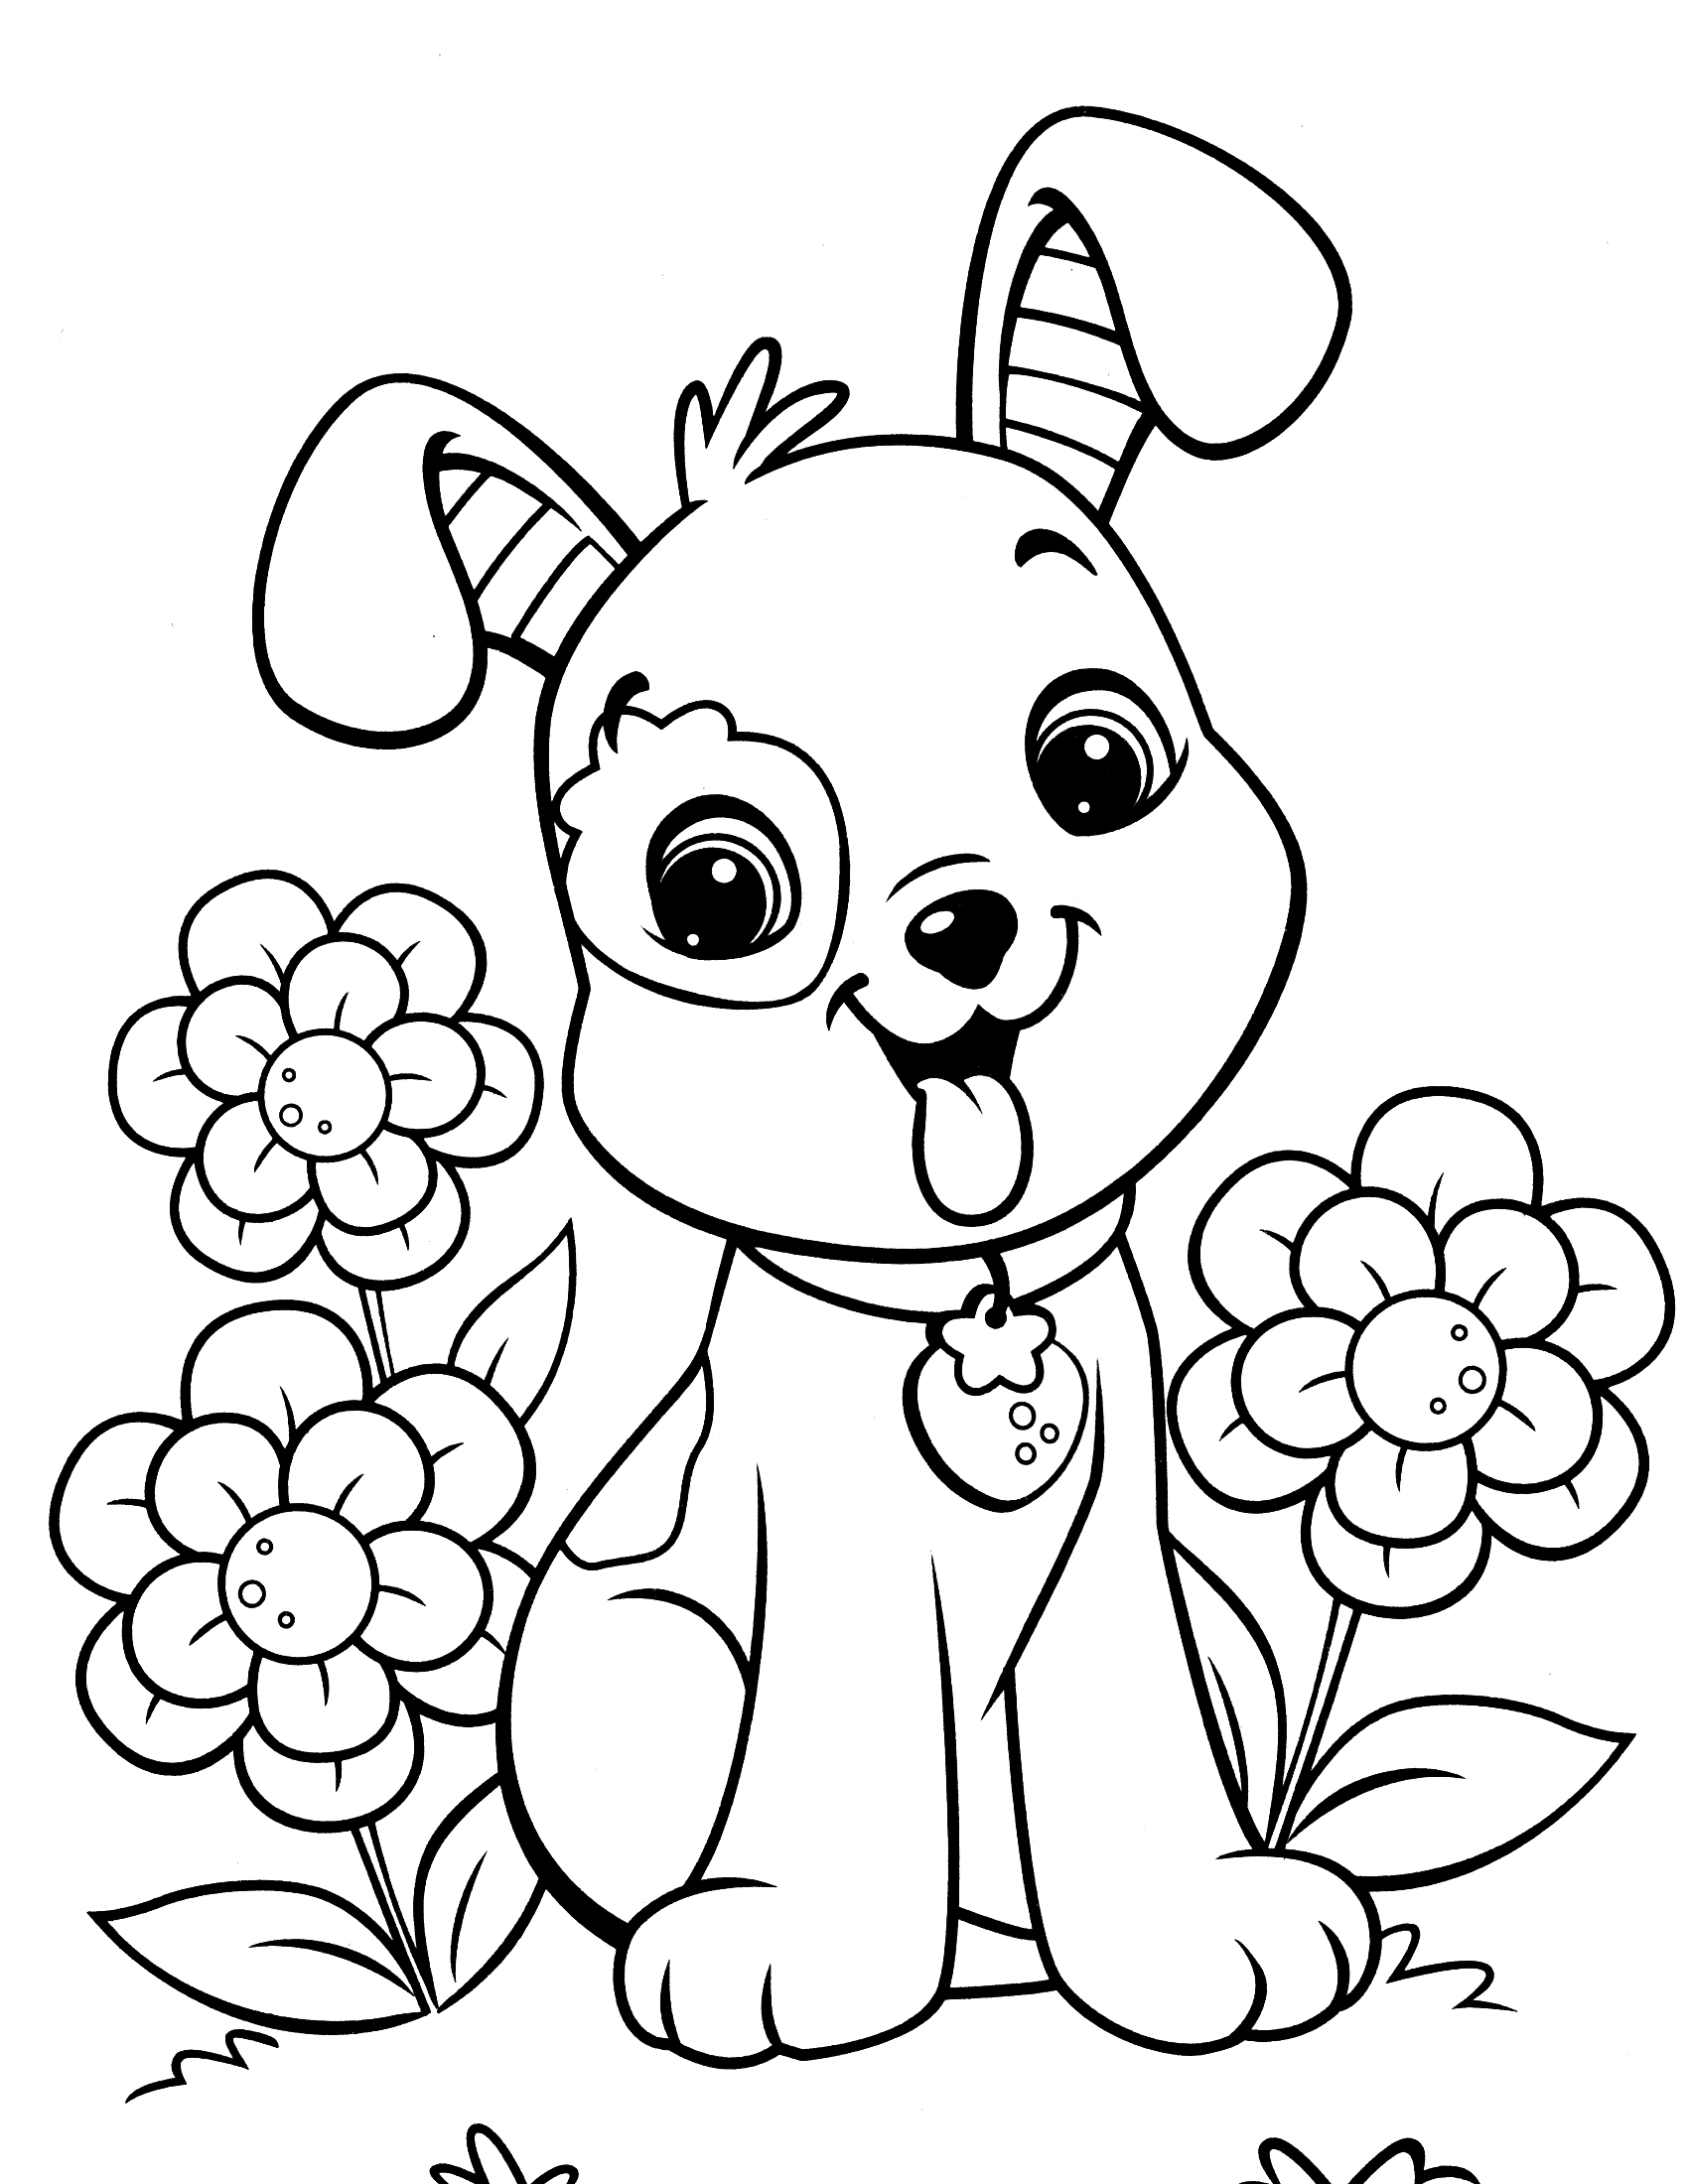 coloring worksheets cute cute dog coloring pages to download and print for free cute worksheets coloring